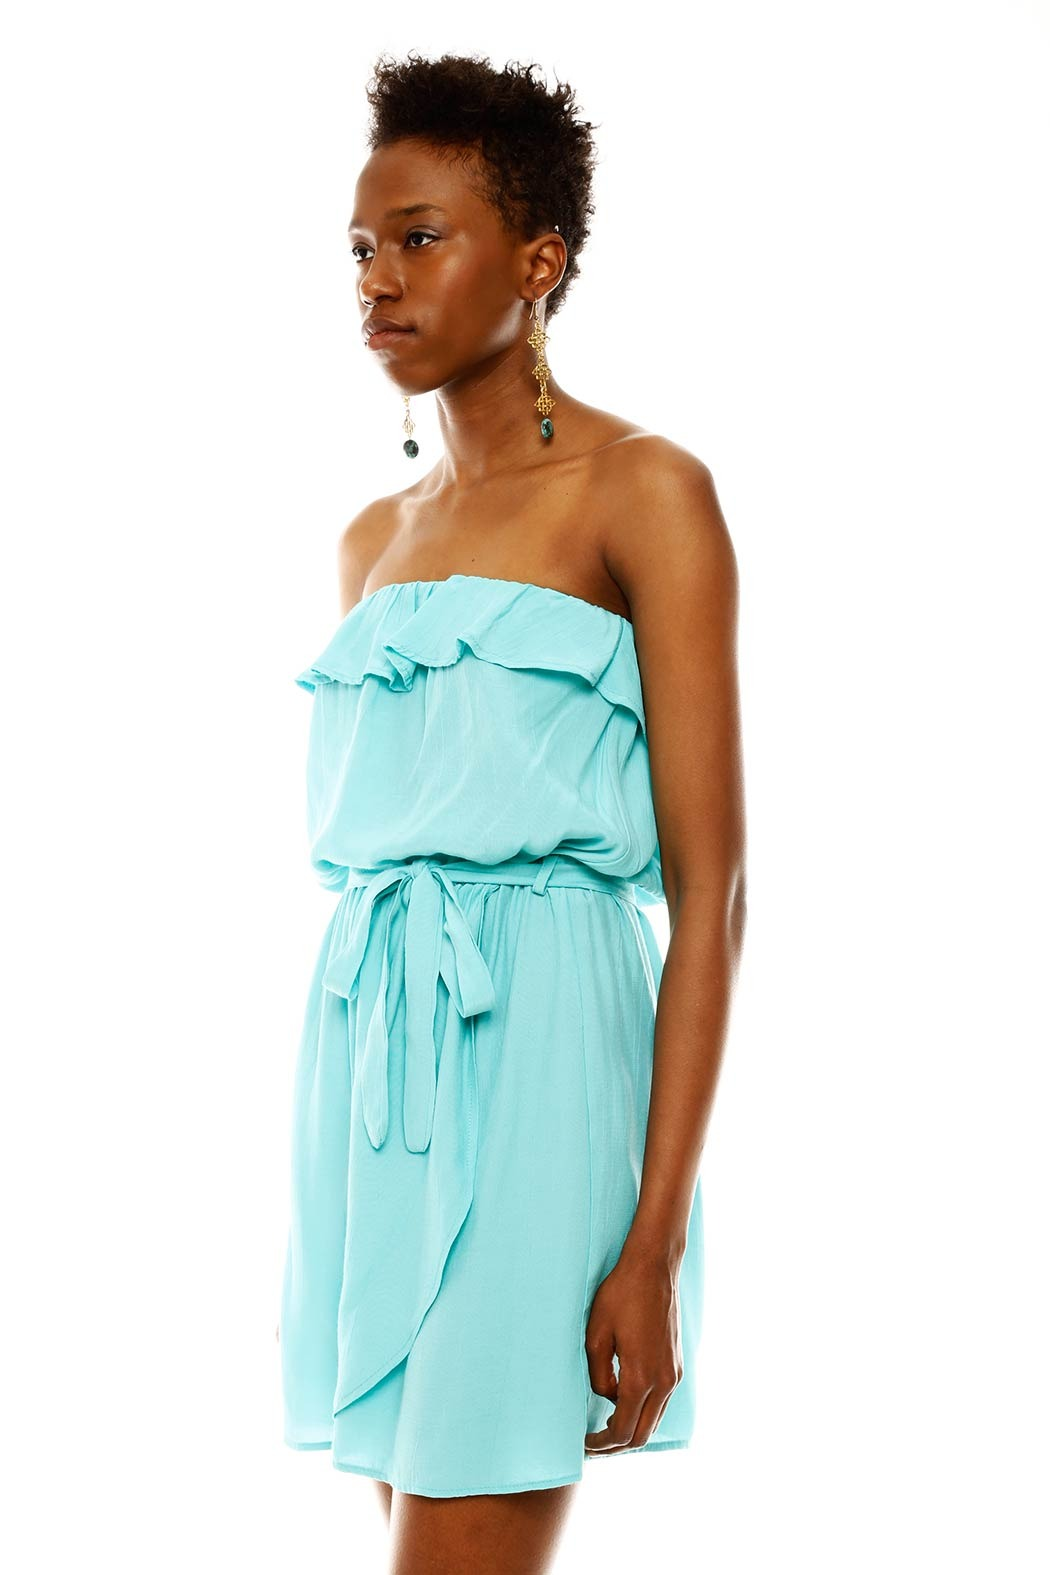 Lucy Love Strapless Summer Dress from Branford by Polished ...